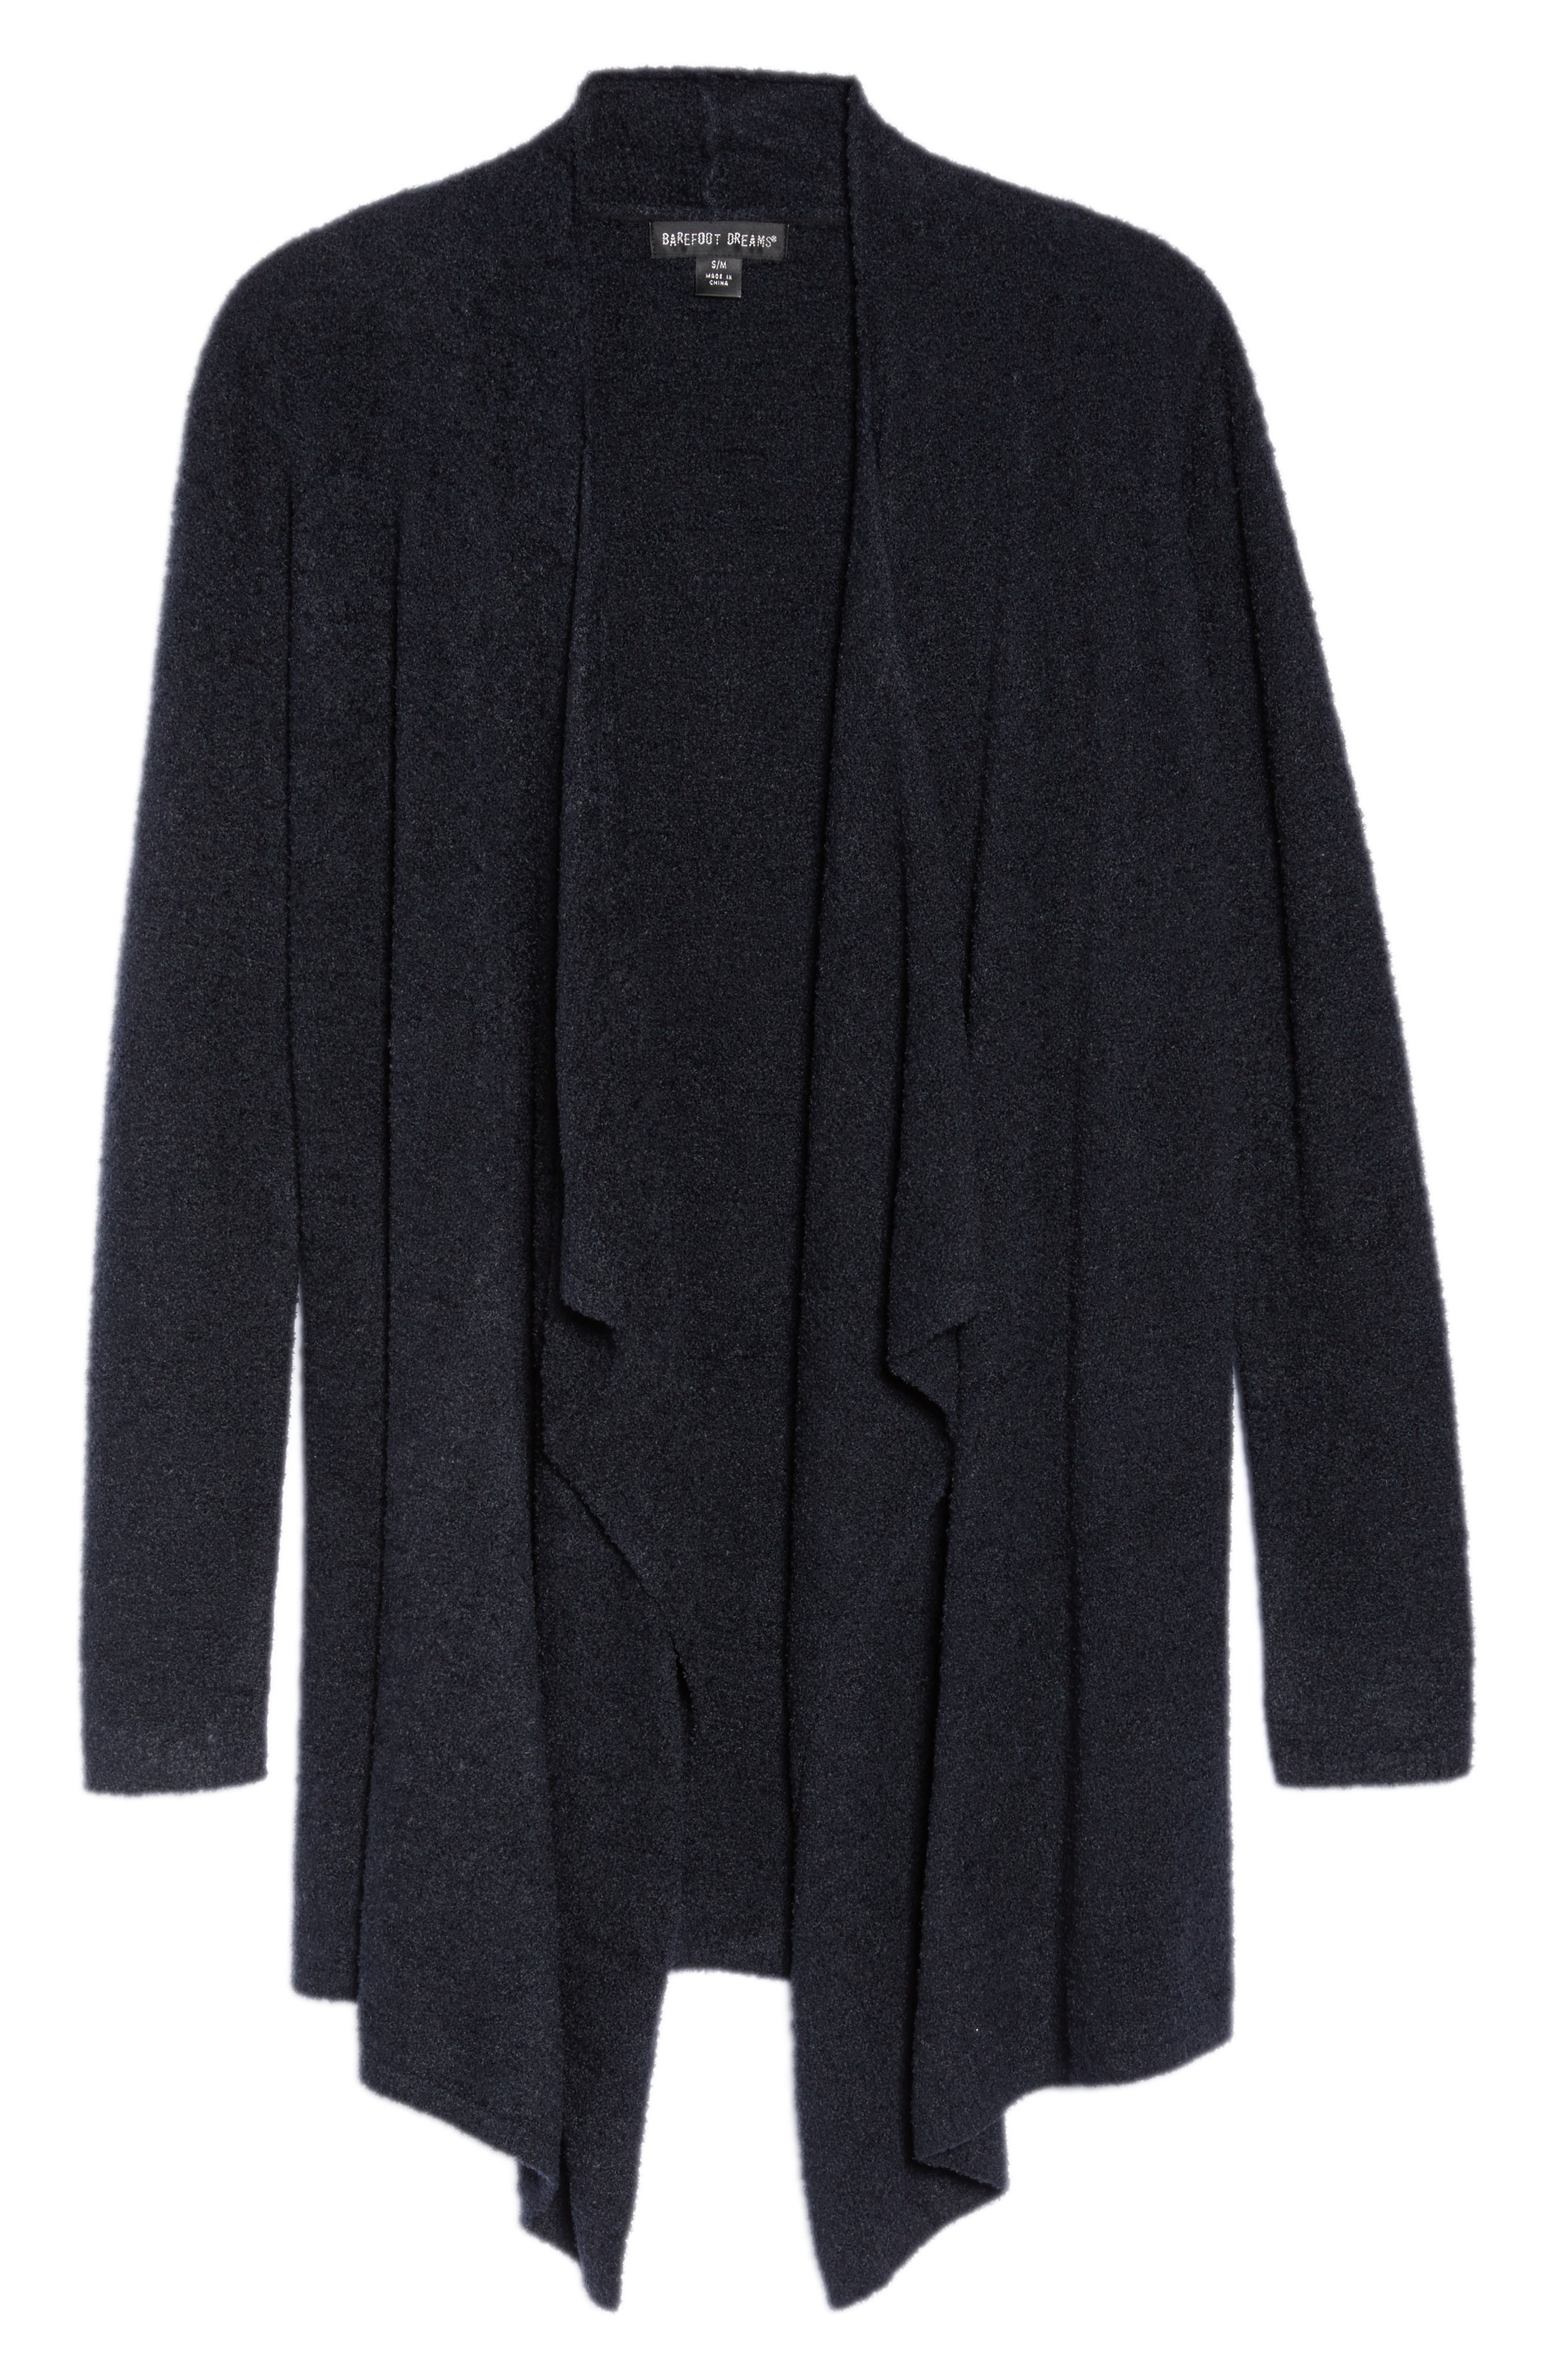 Alternate Image 1 Selected - Barefoot Dreams® CozyChic Lite® Calypso Wrap Cardigan (Nordstrom Exclusive)